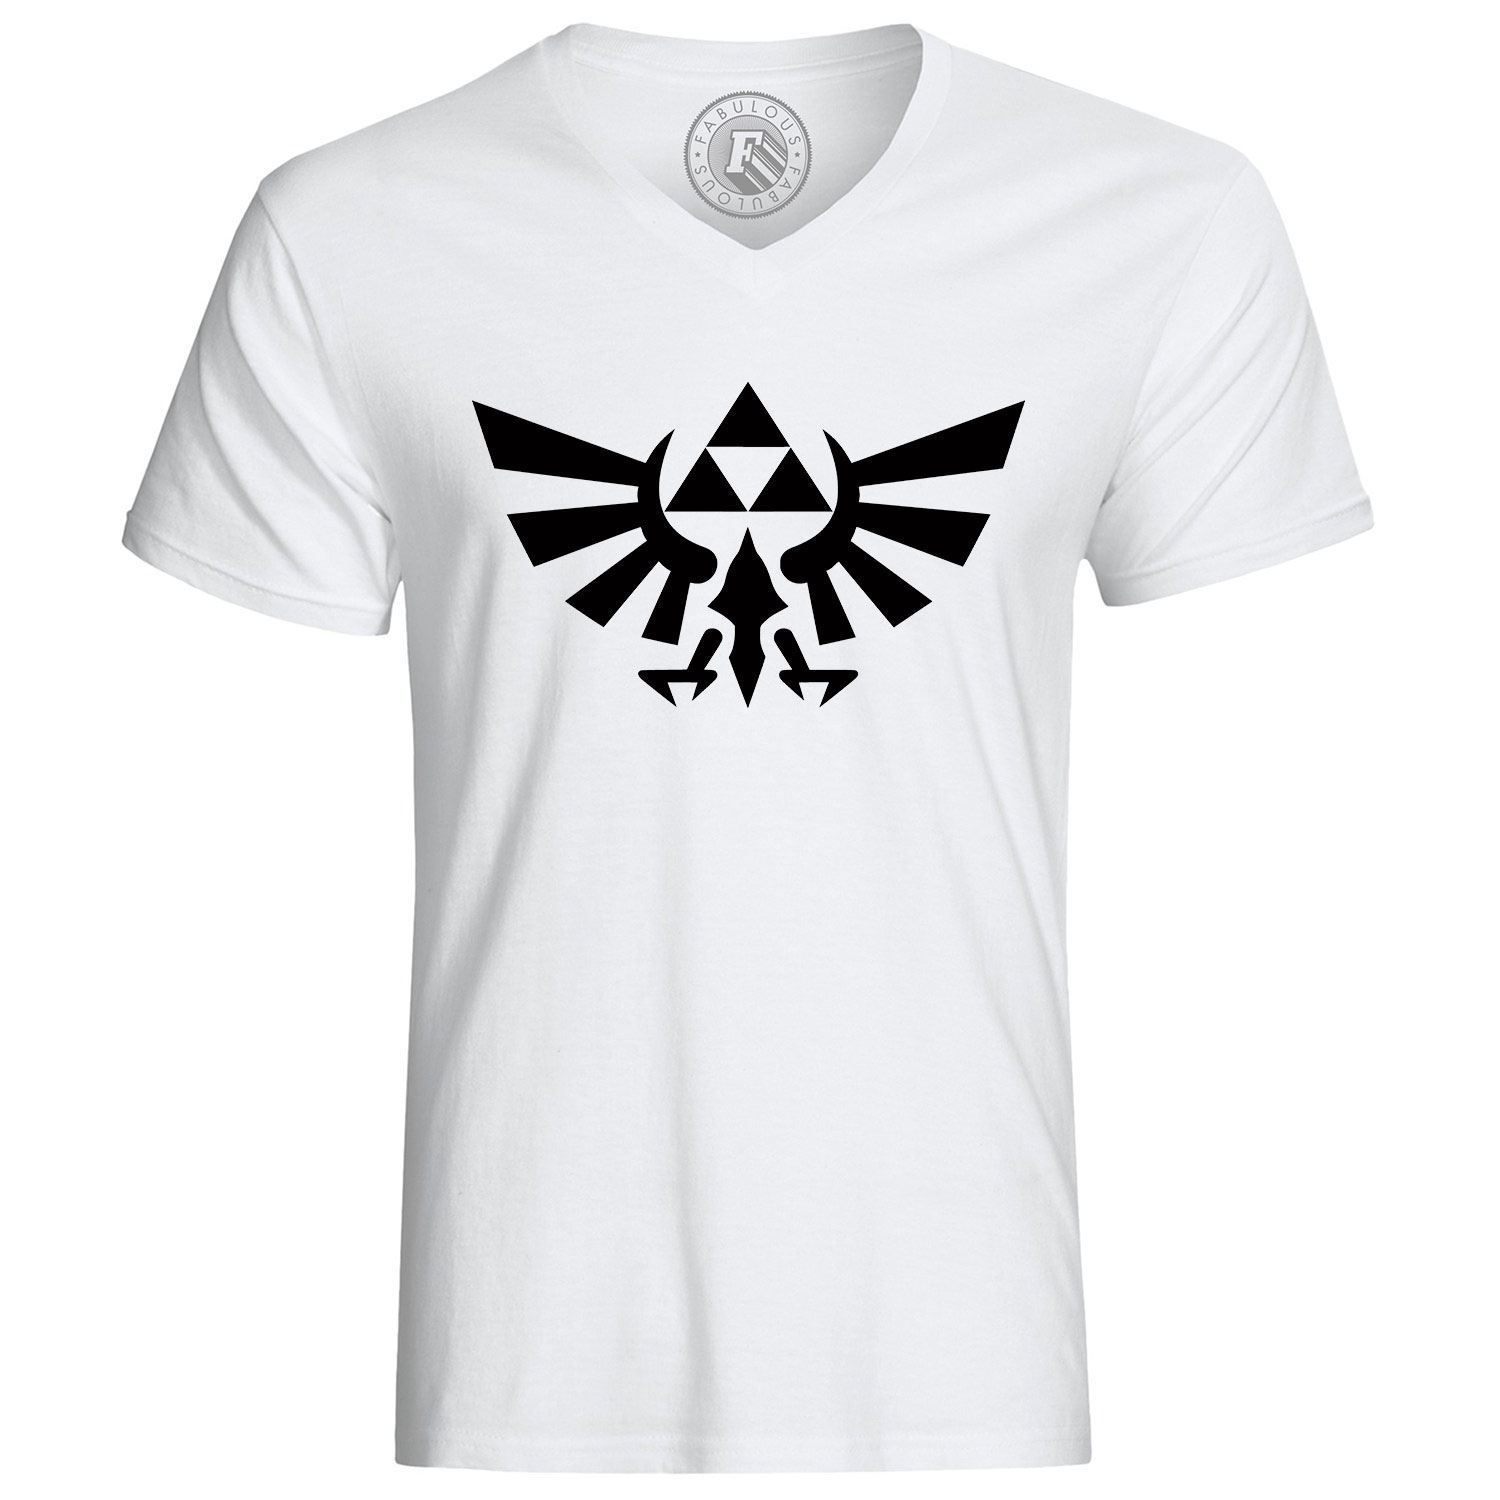 T-shirt zelda logo jeux video Printed Men T-Shirt Short Sleeve Funny Tee Shirts